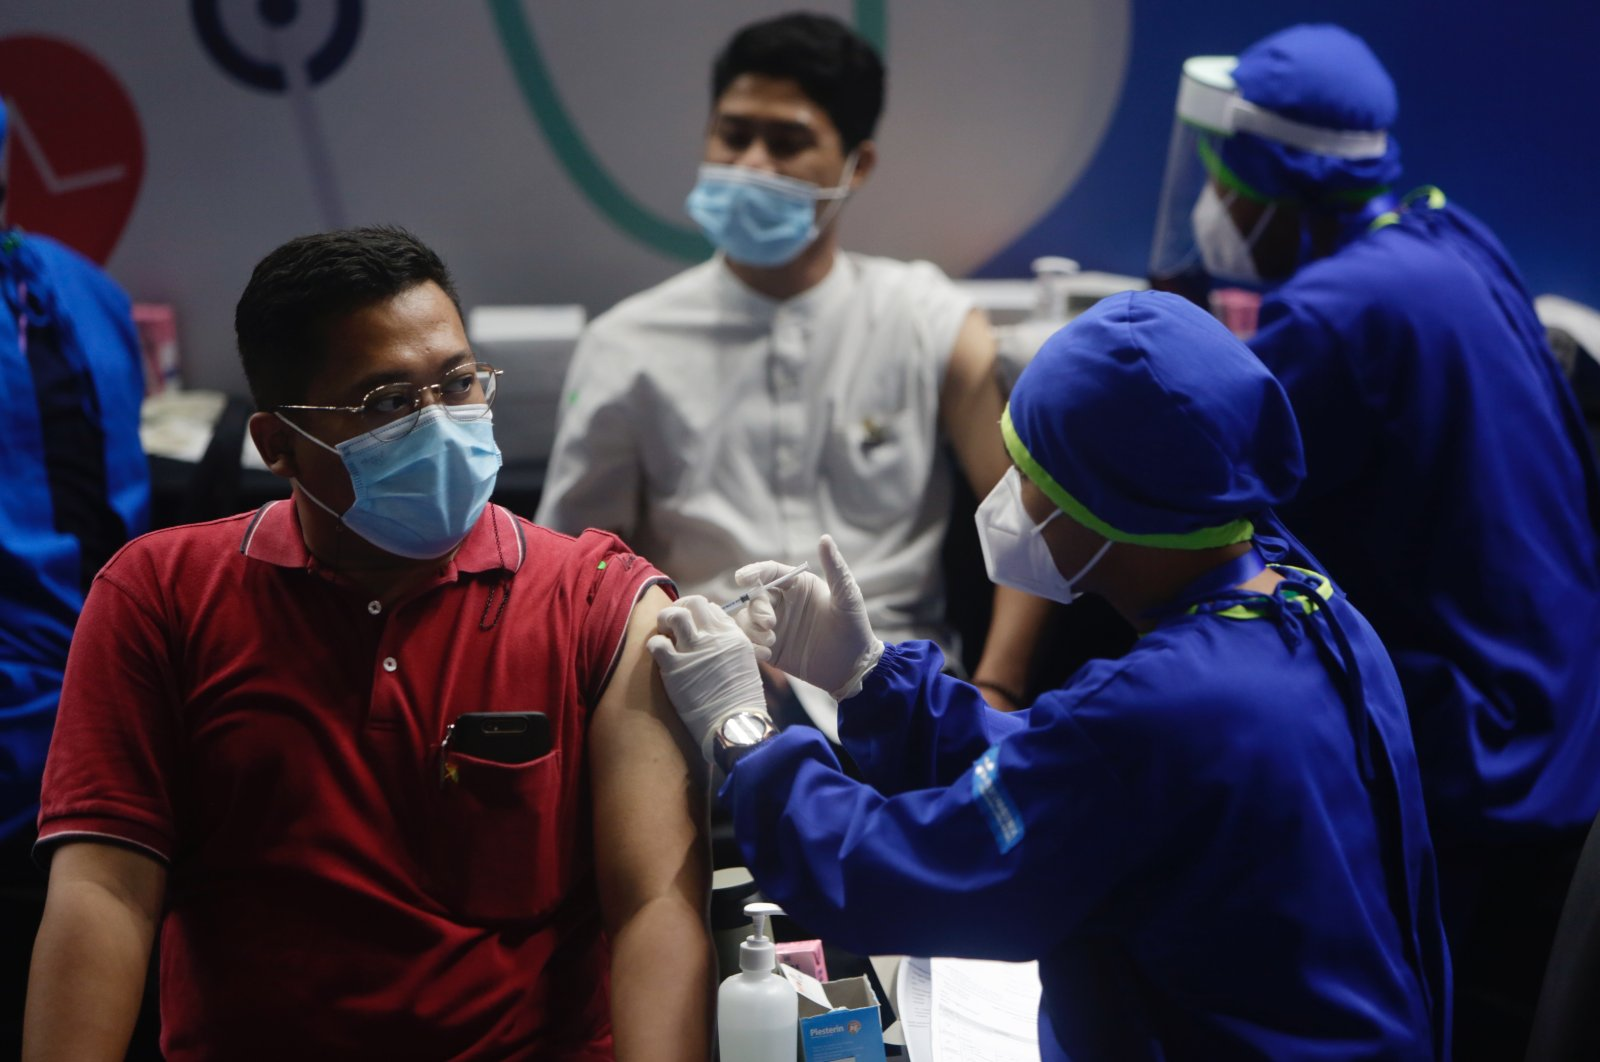 Two men receive shots of COVID-19 vaccines during a mass vaccination drive in Jakarta, Indonesia, March 15, 2021. (EPA Photo)